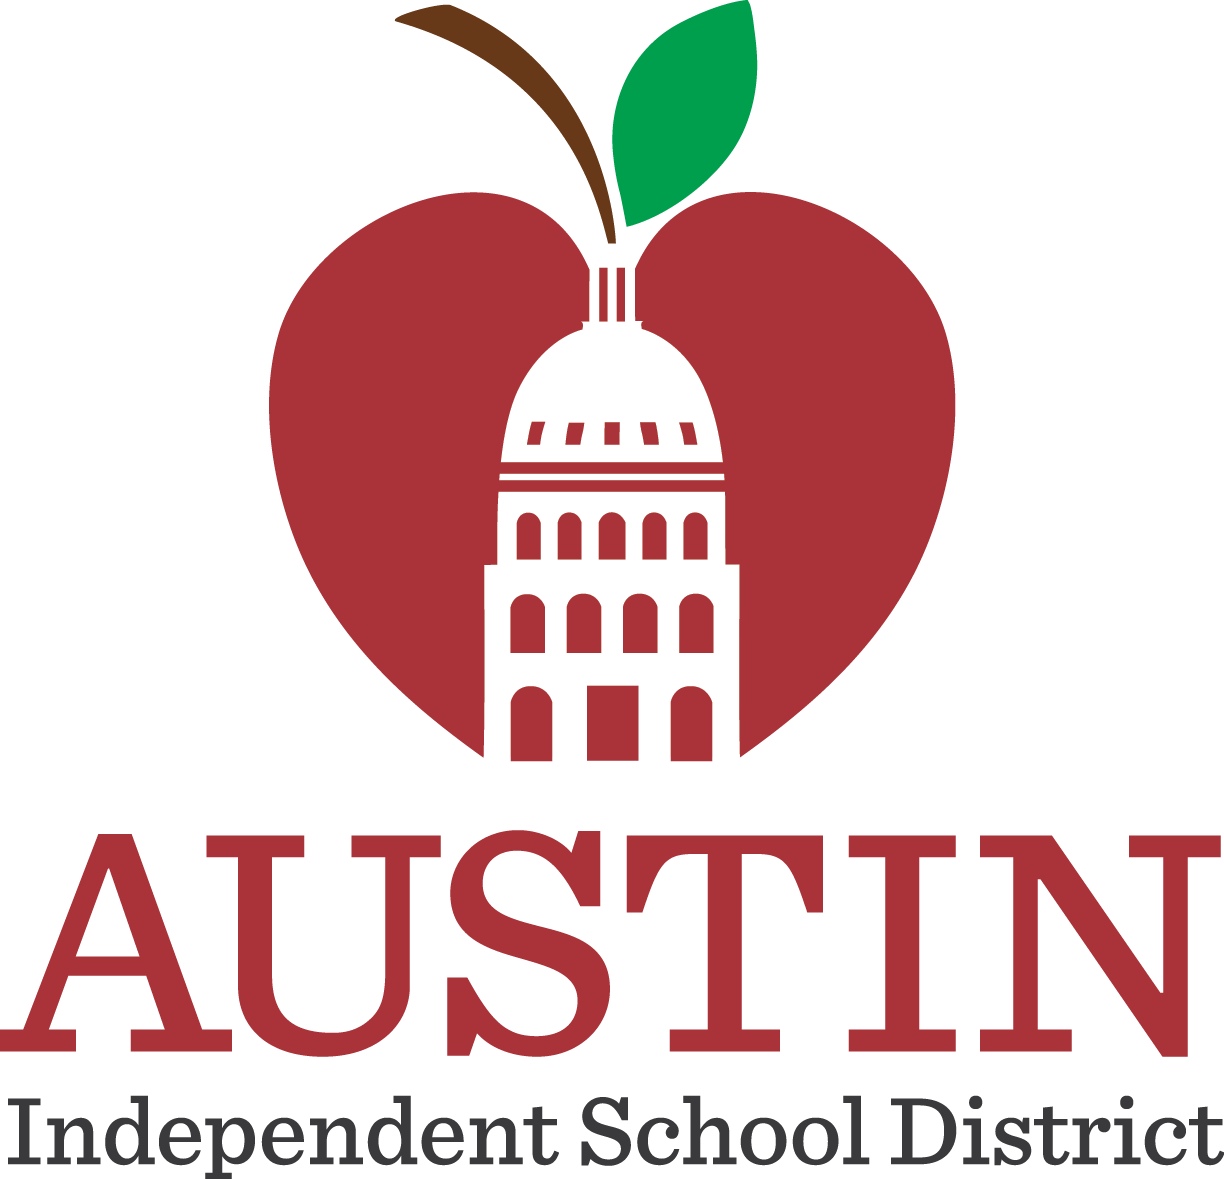 Austin ISD Gives - Oak Hill Elementary School